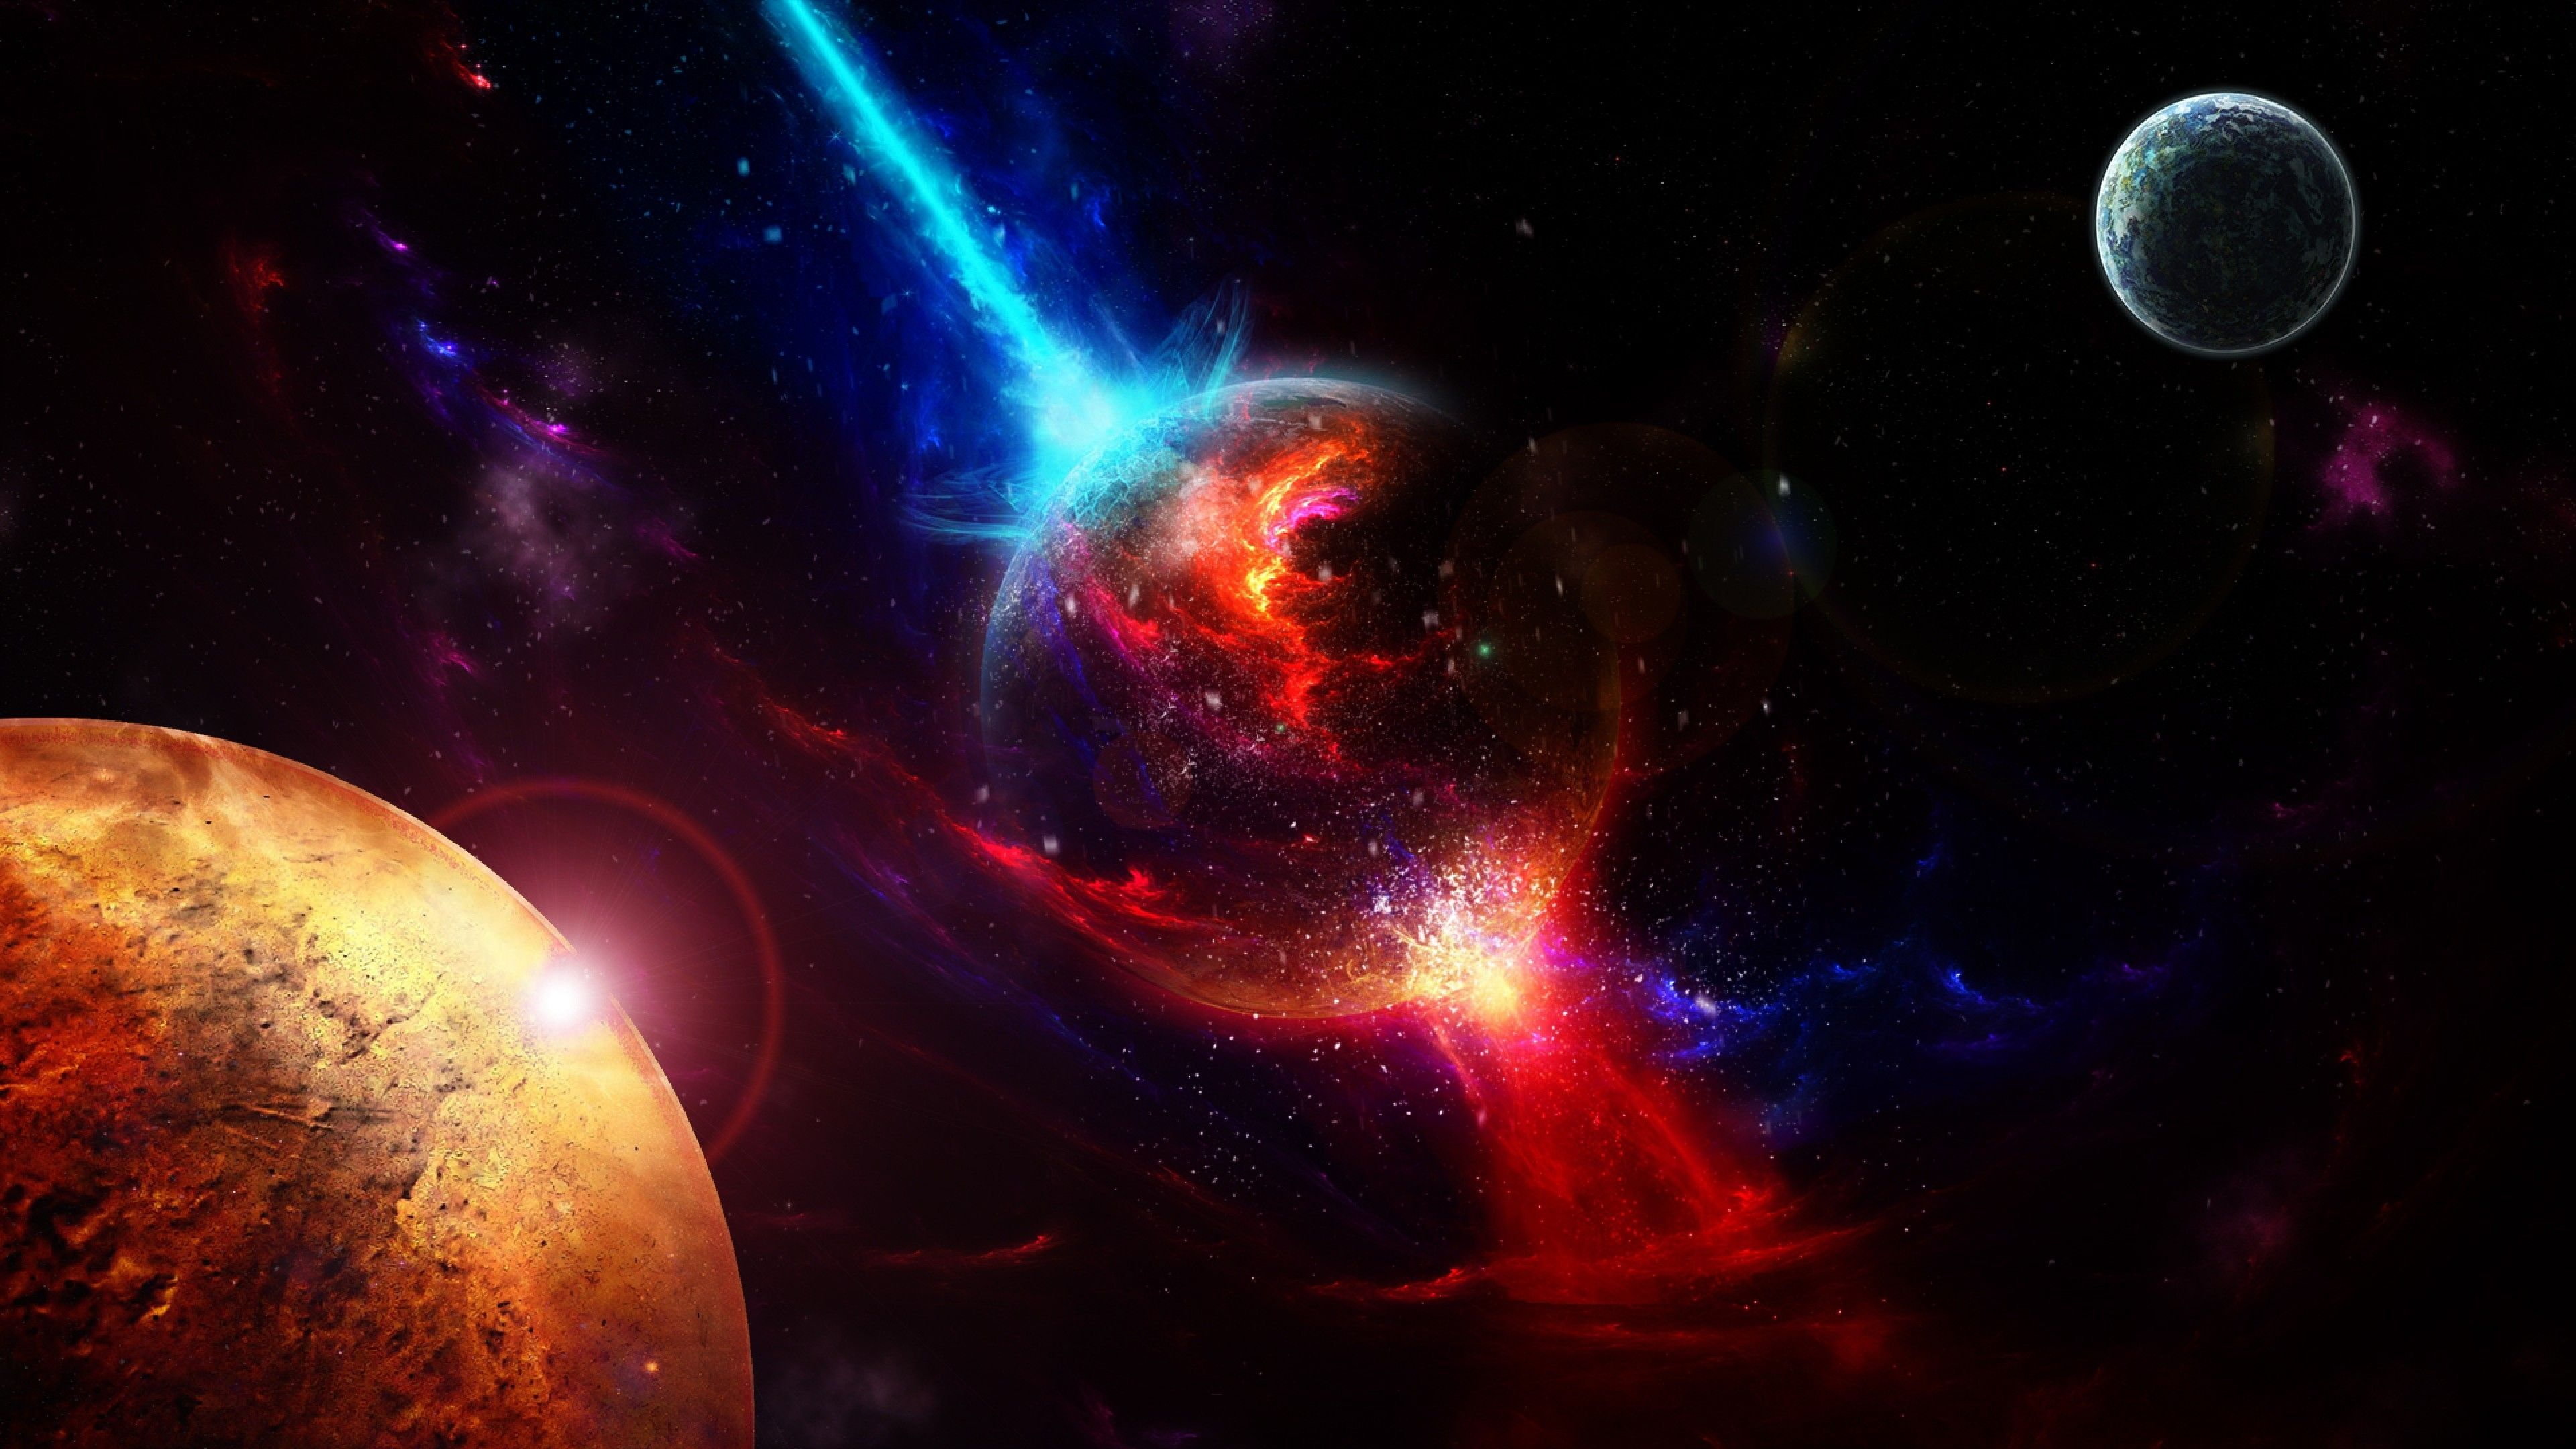 3840x2160 76+ Red Space Wallpapers on WallpaperPlay